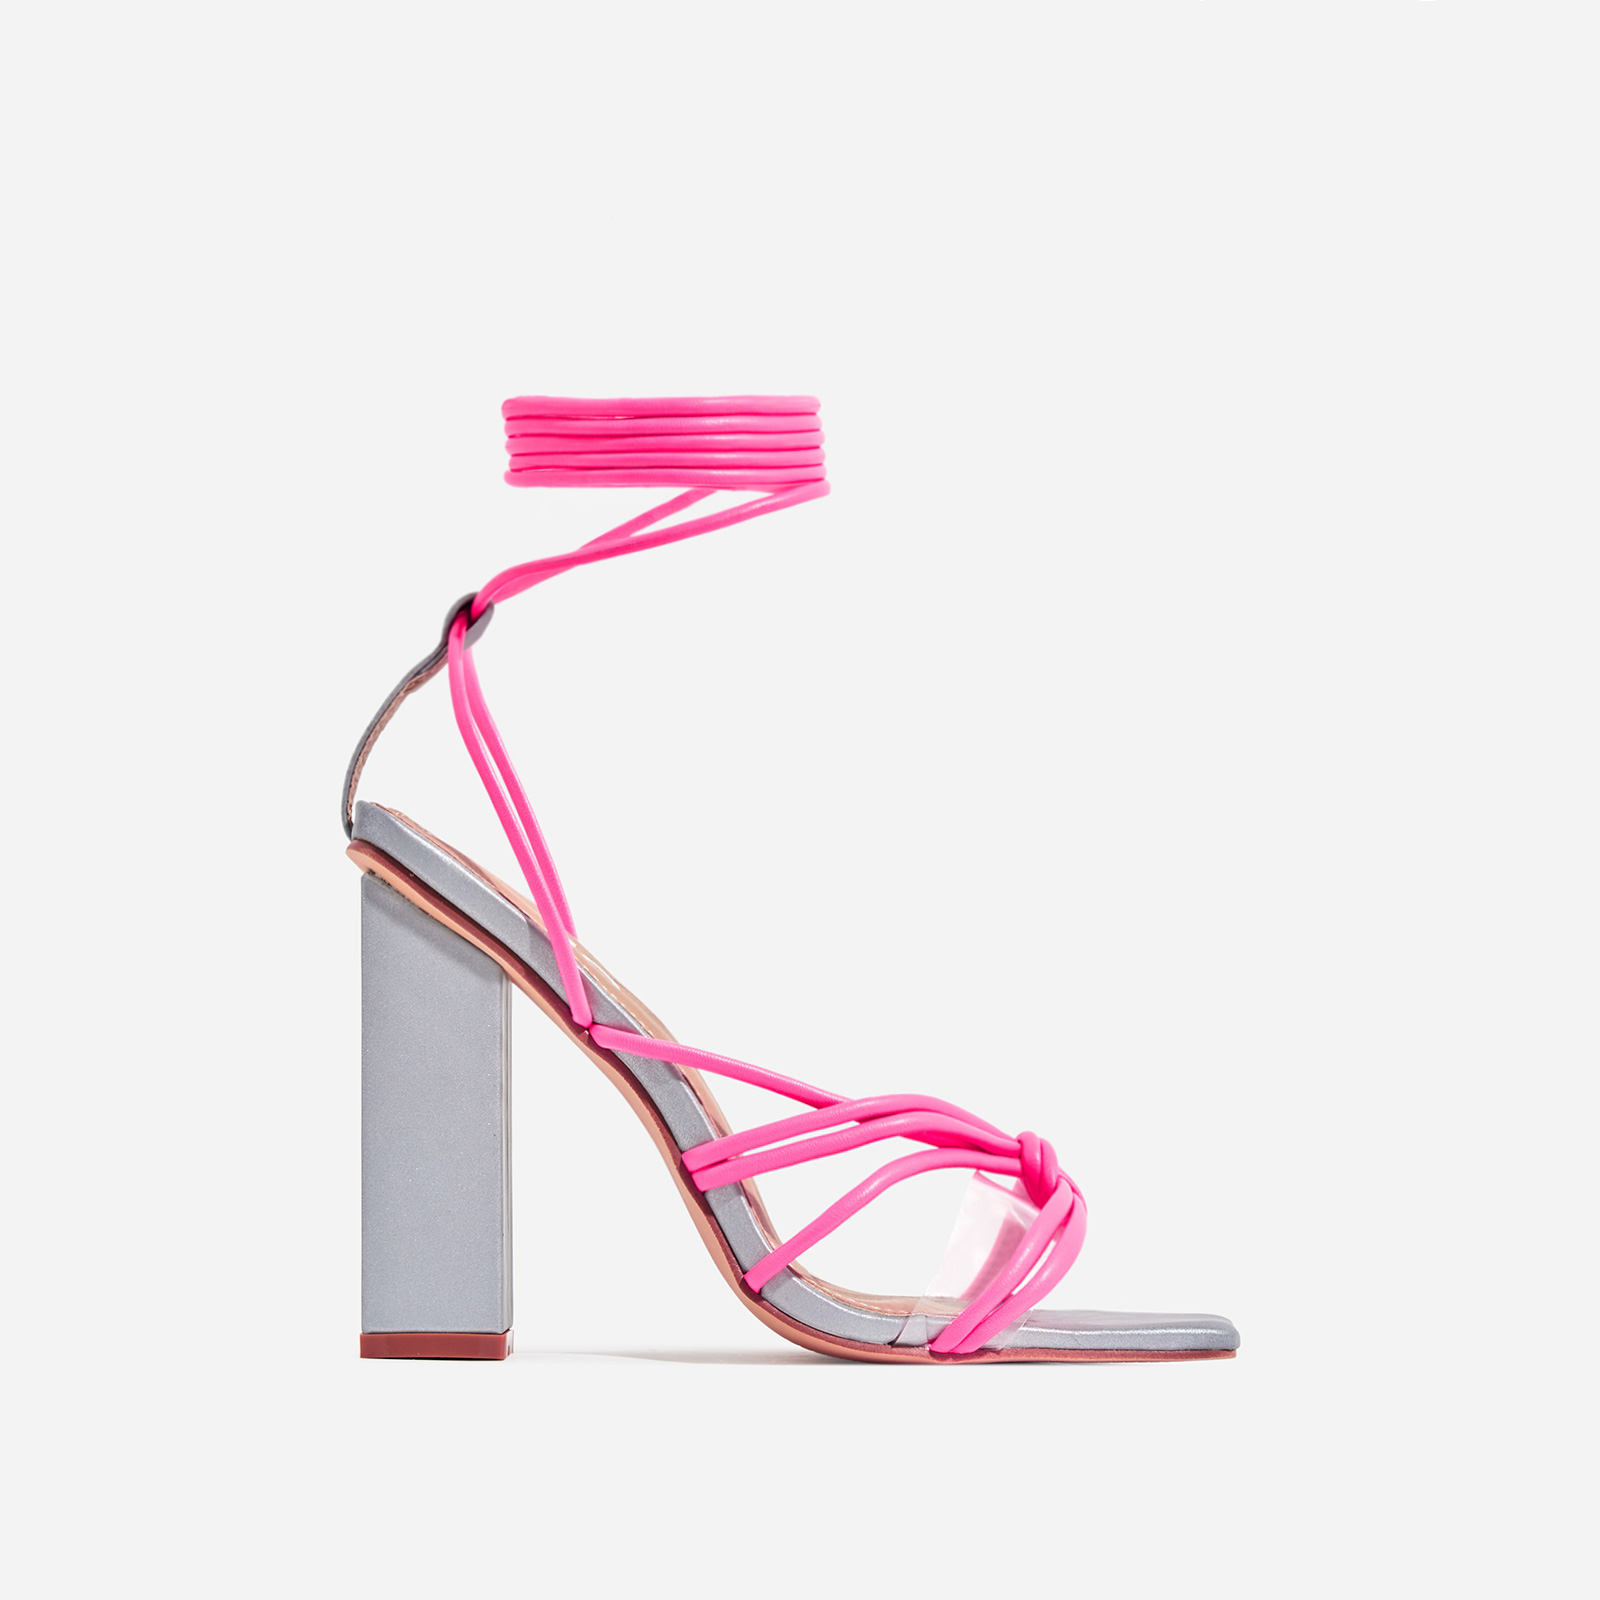 Neima Lace Up Square Toe Perspex Block Heel In Reflective Silver And Pink Faux Leather